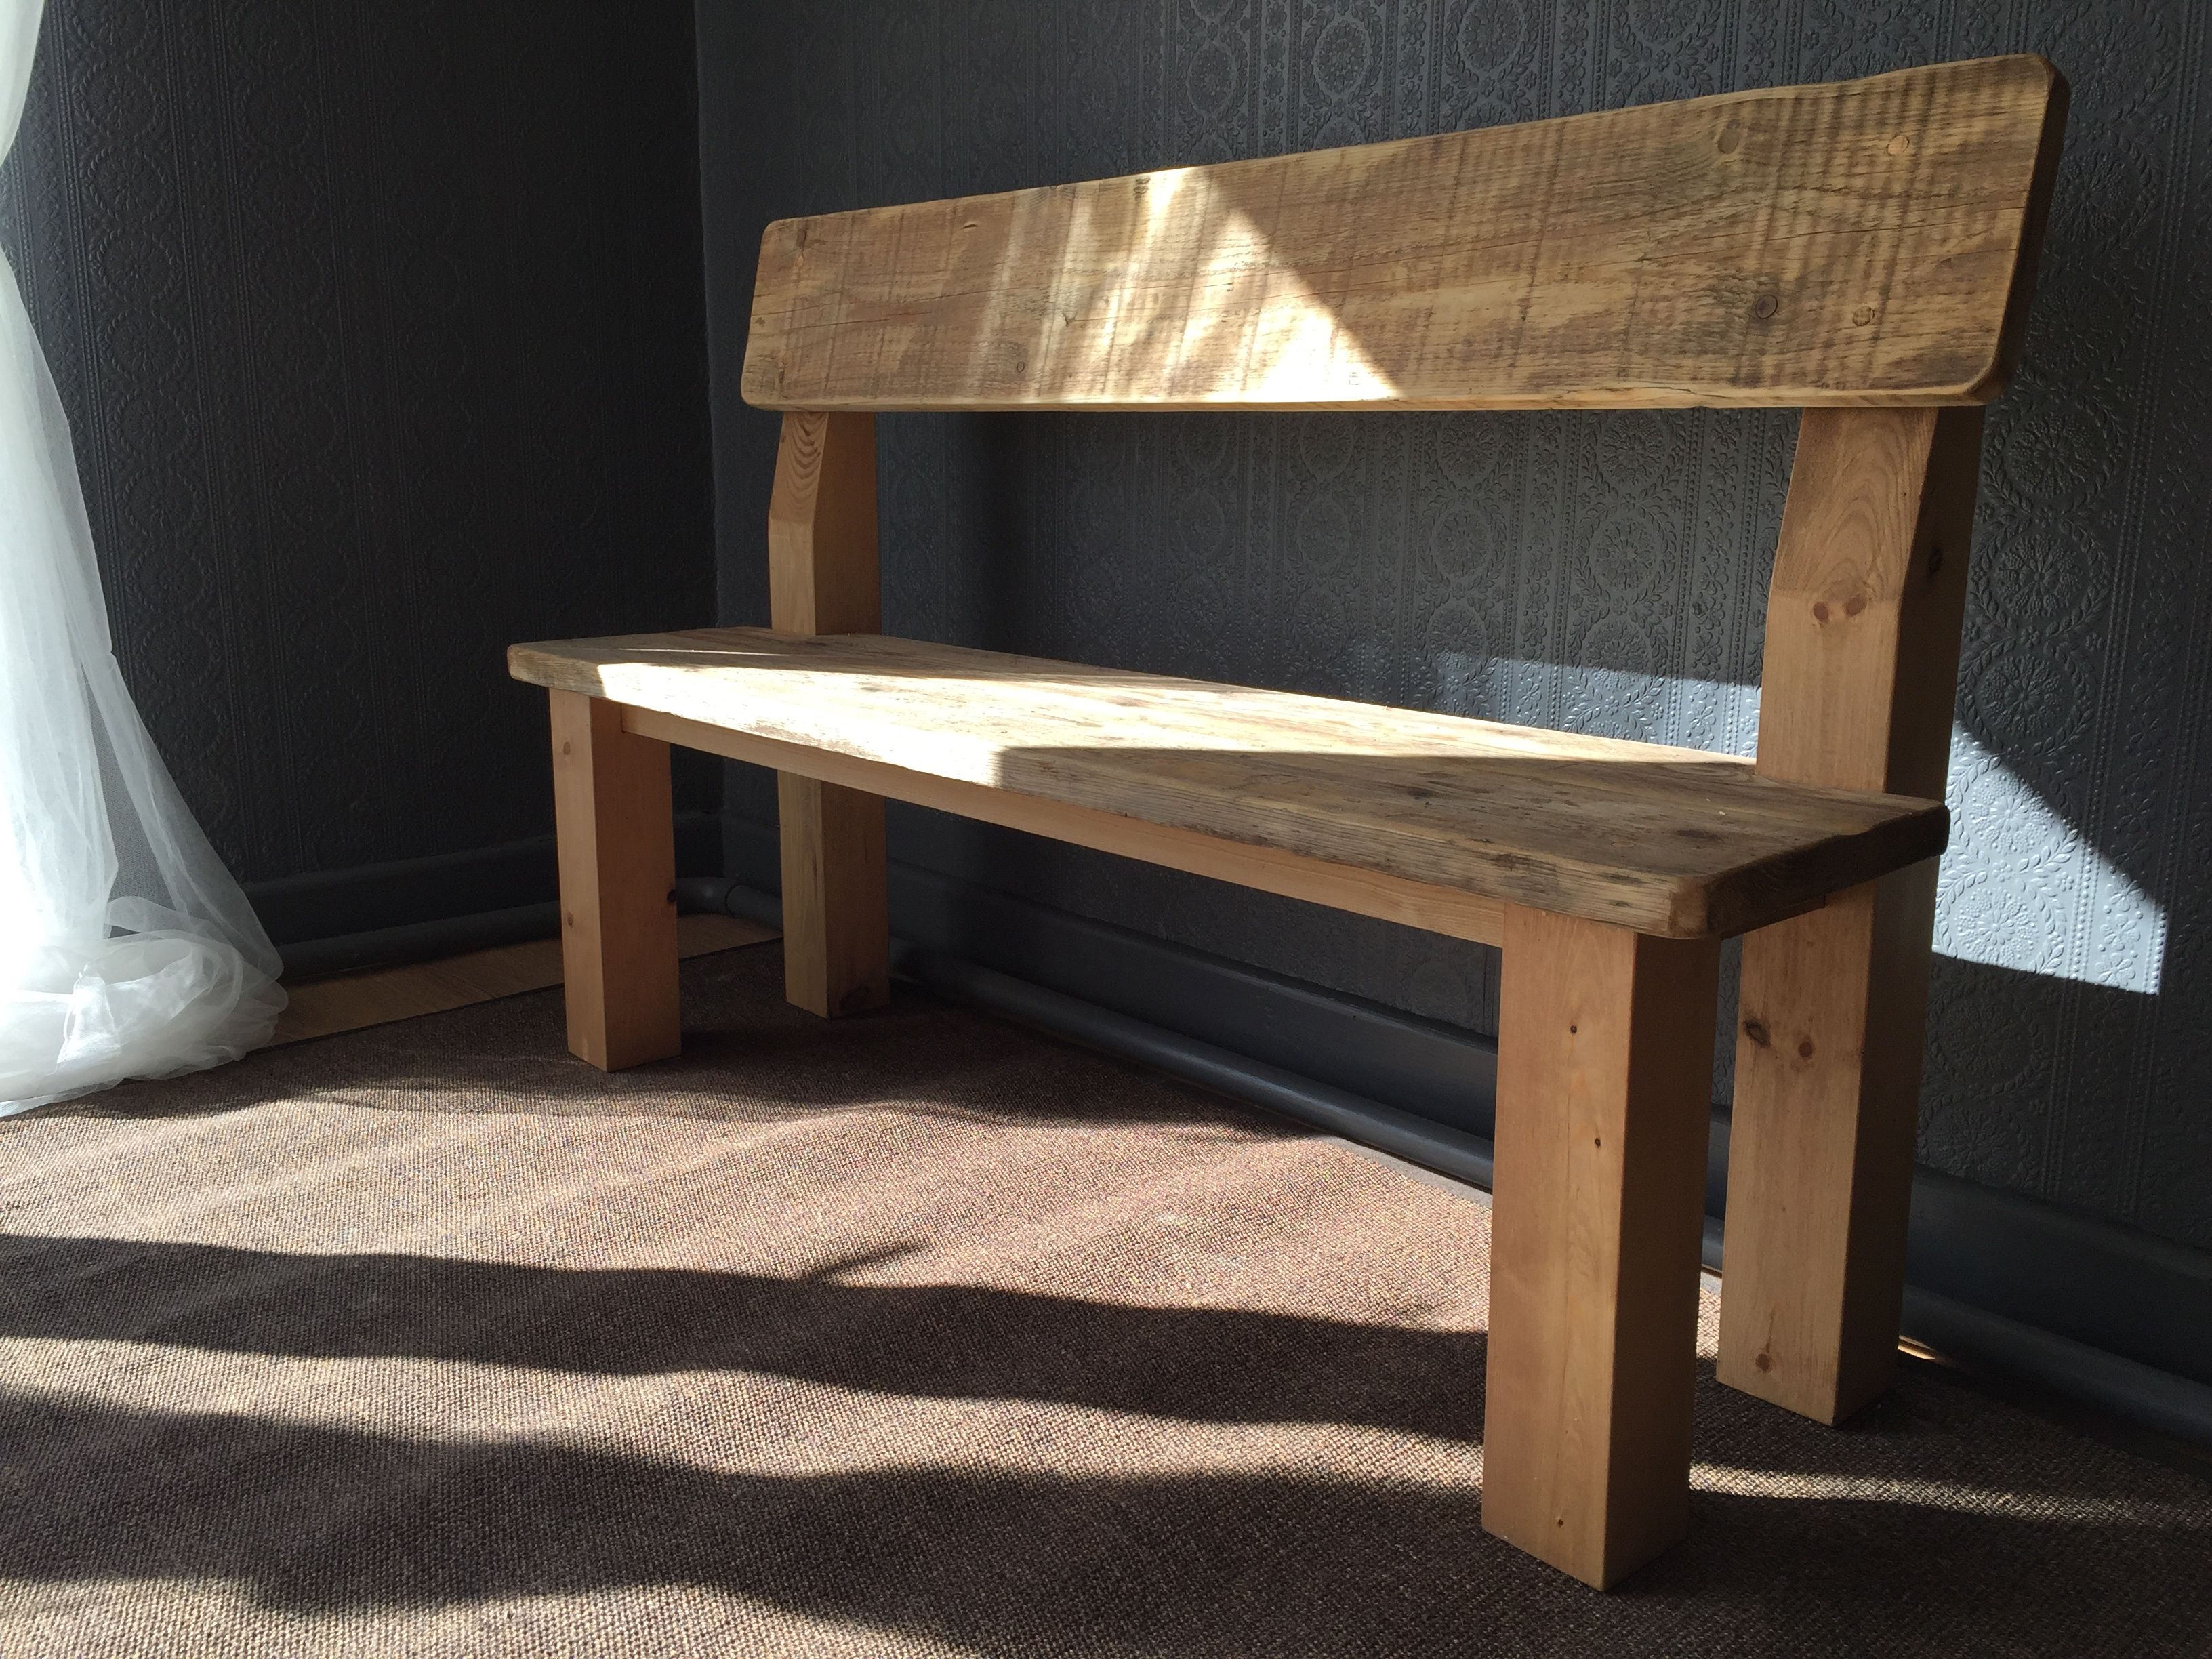 Dining Bench With Back Rest